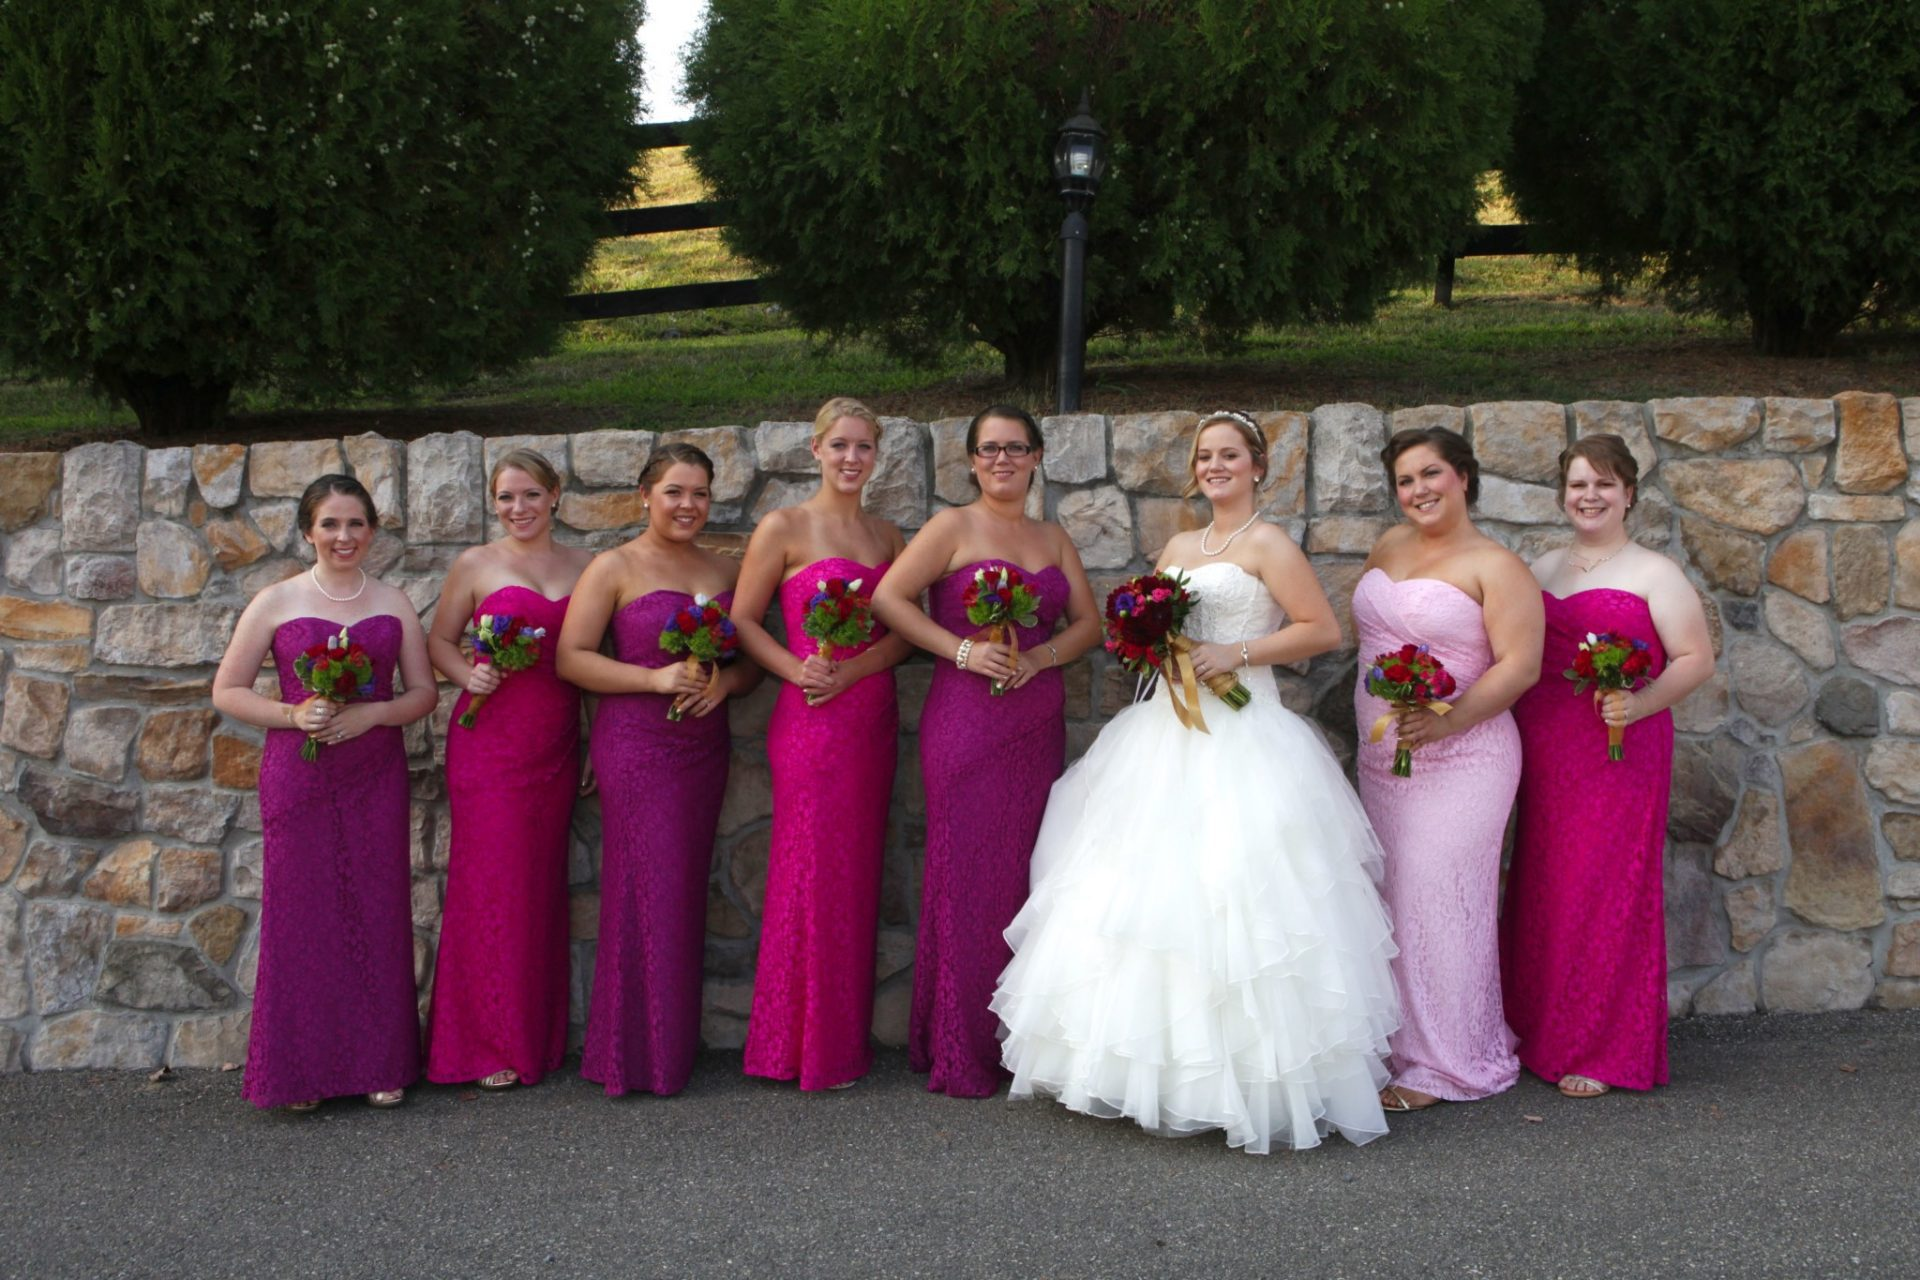 Bridal party poses by stone wall in front of Morningside Inn wedding venue in Frederick MD